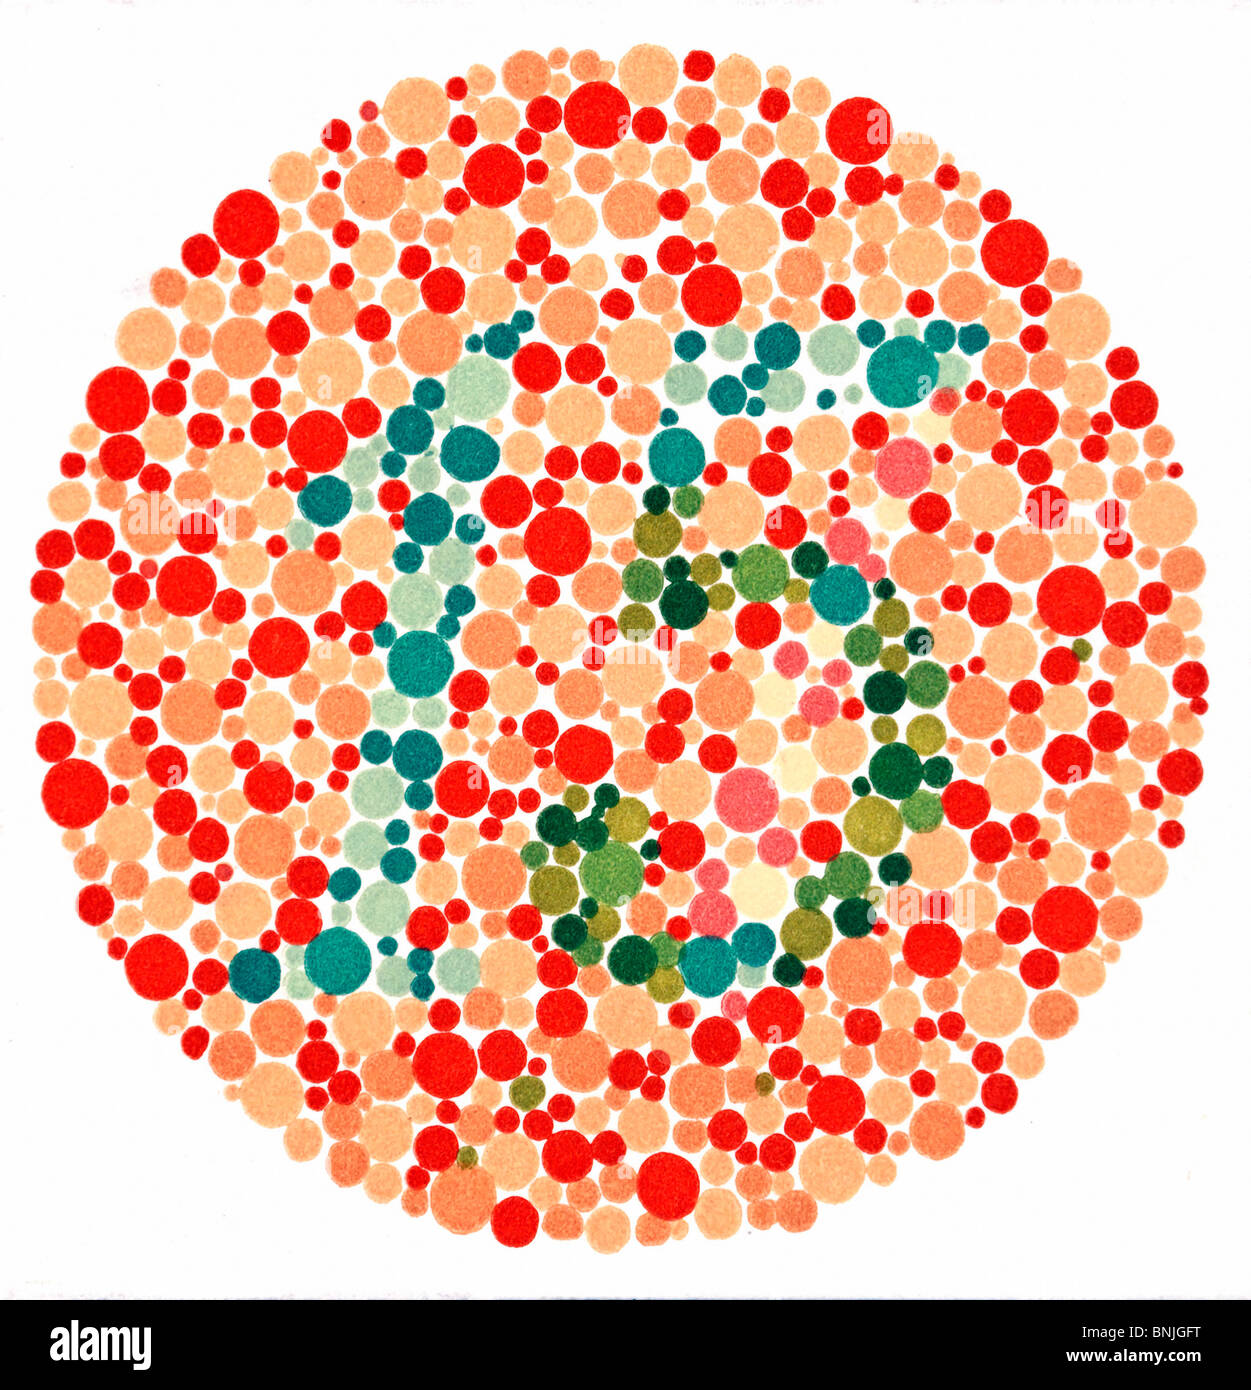 Book for color blindness - Color Blindness Armed Forces Color Vision Test Pseudo Isochromatic Plate Testing Color Perception Red